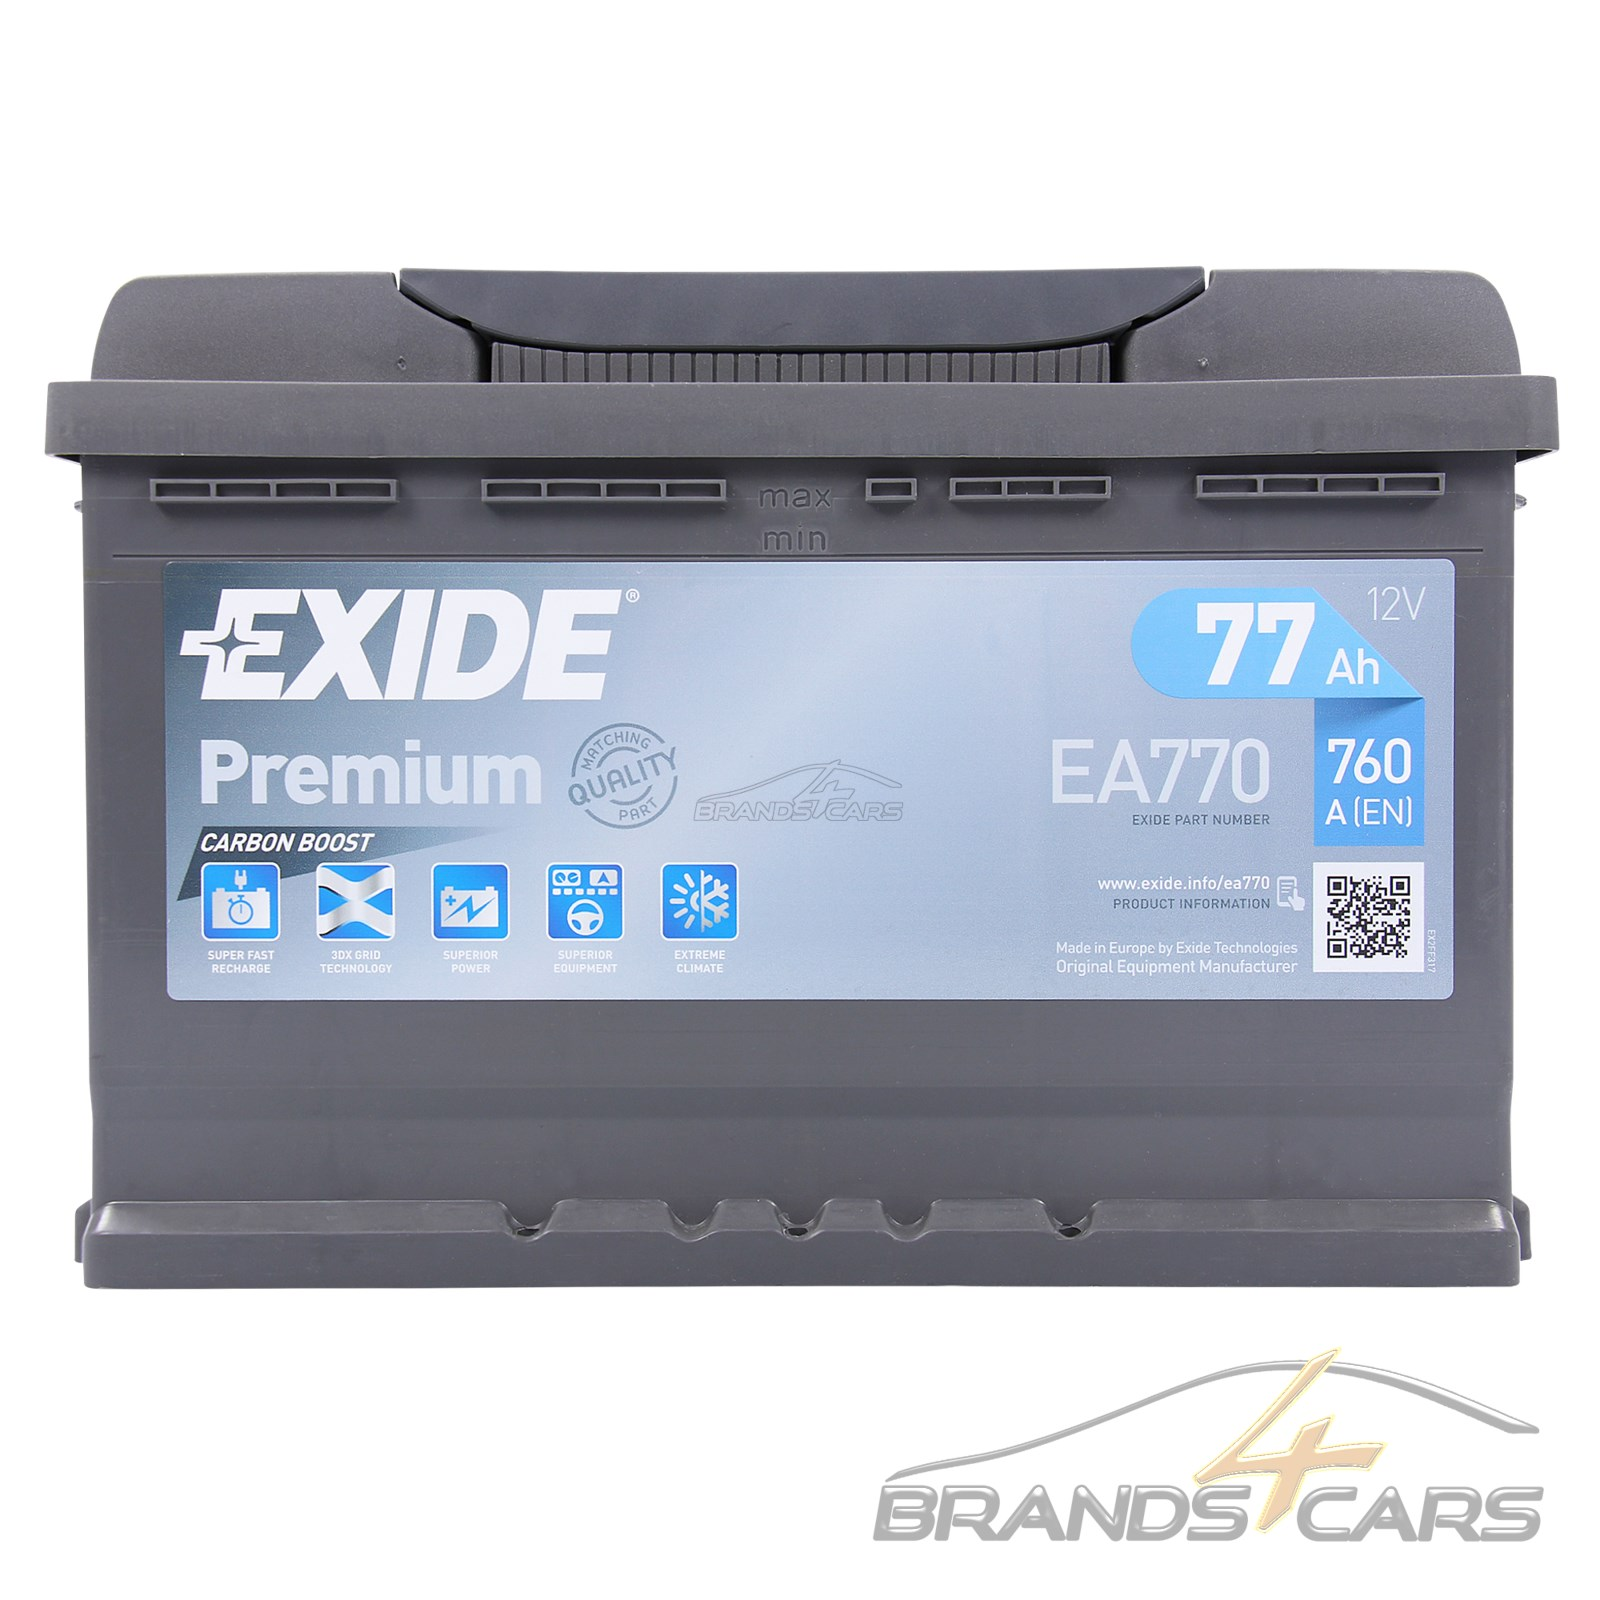 exide premium carbon boost 77ah 760a auto batterie. Black Bedroom Furniture Sets. Home Design Ideas